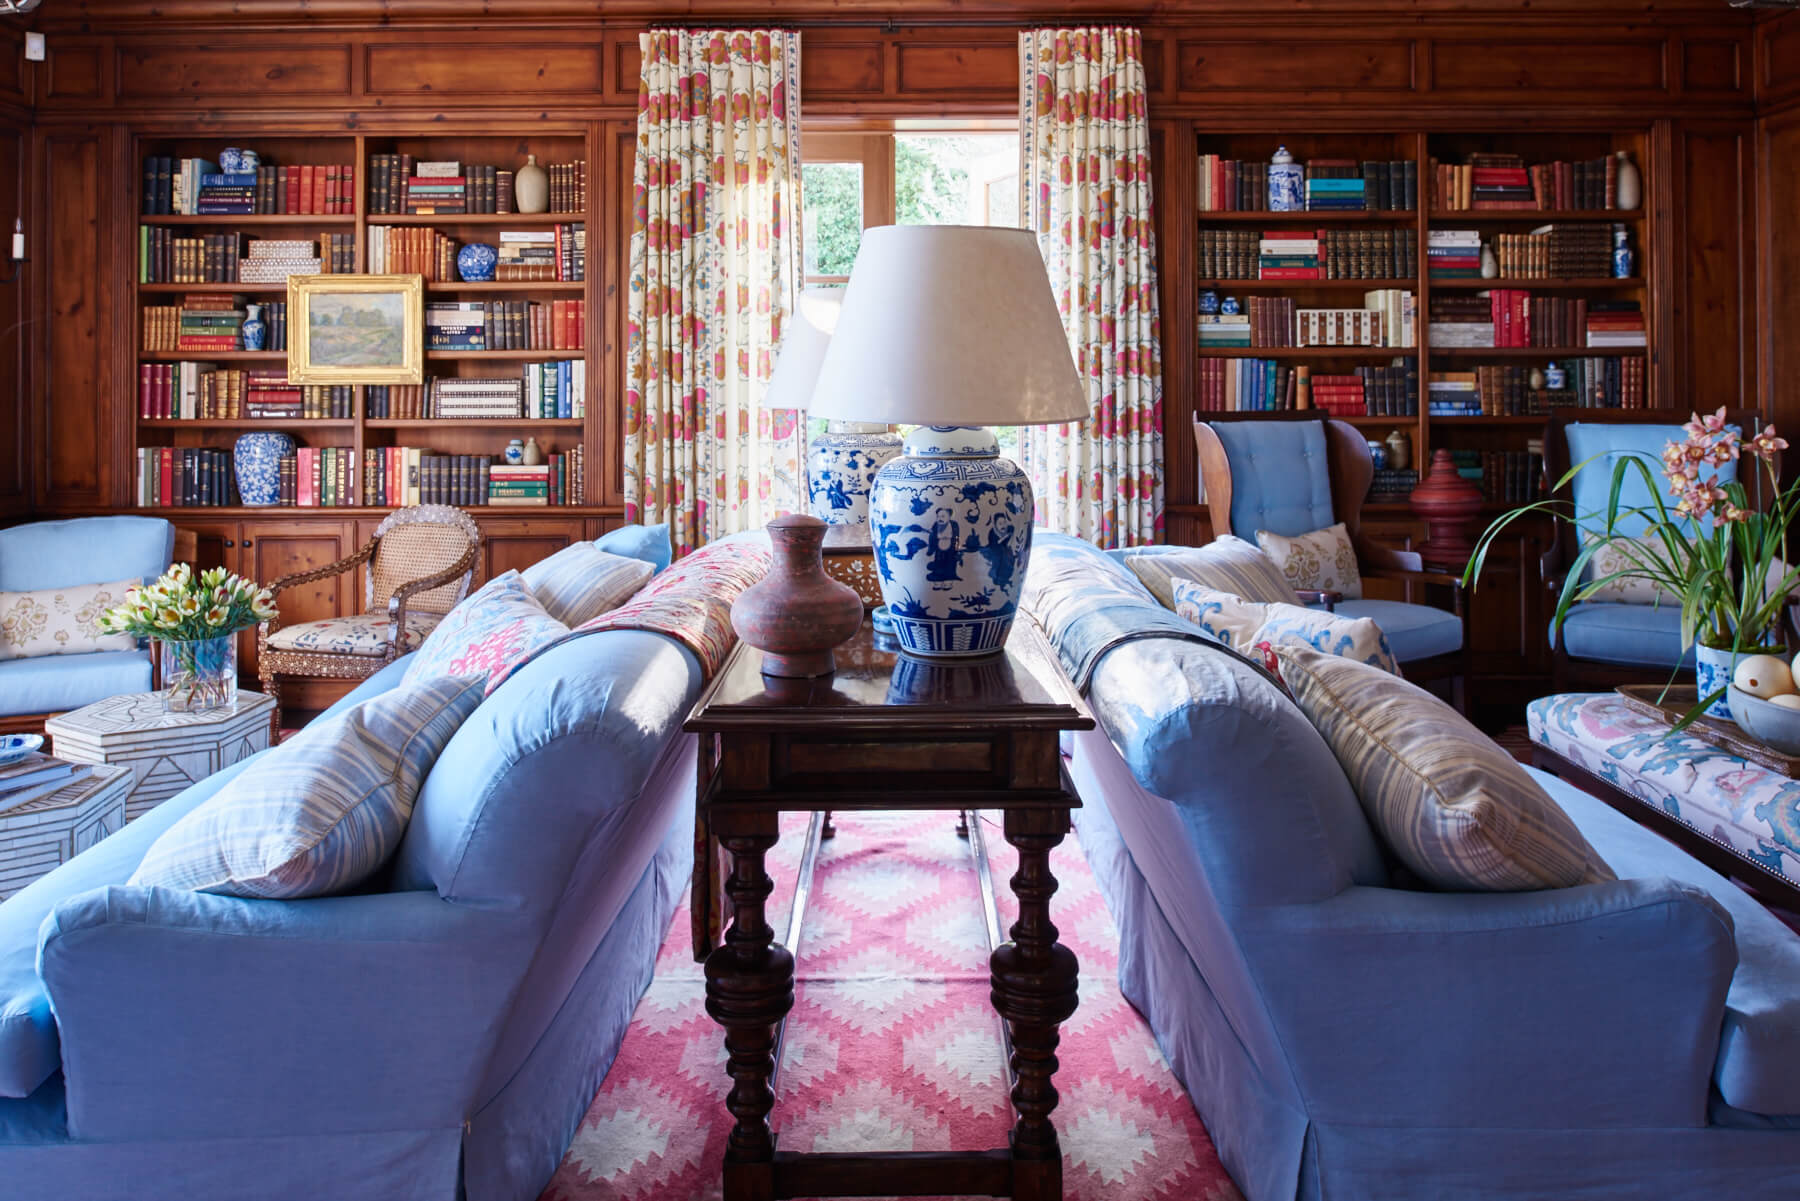 Blue upholstered sofa and chairs with red patterned drapery in the library